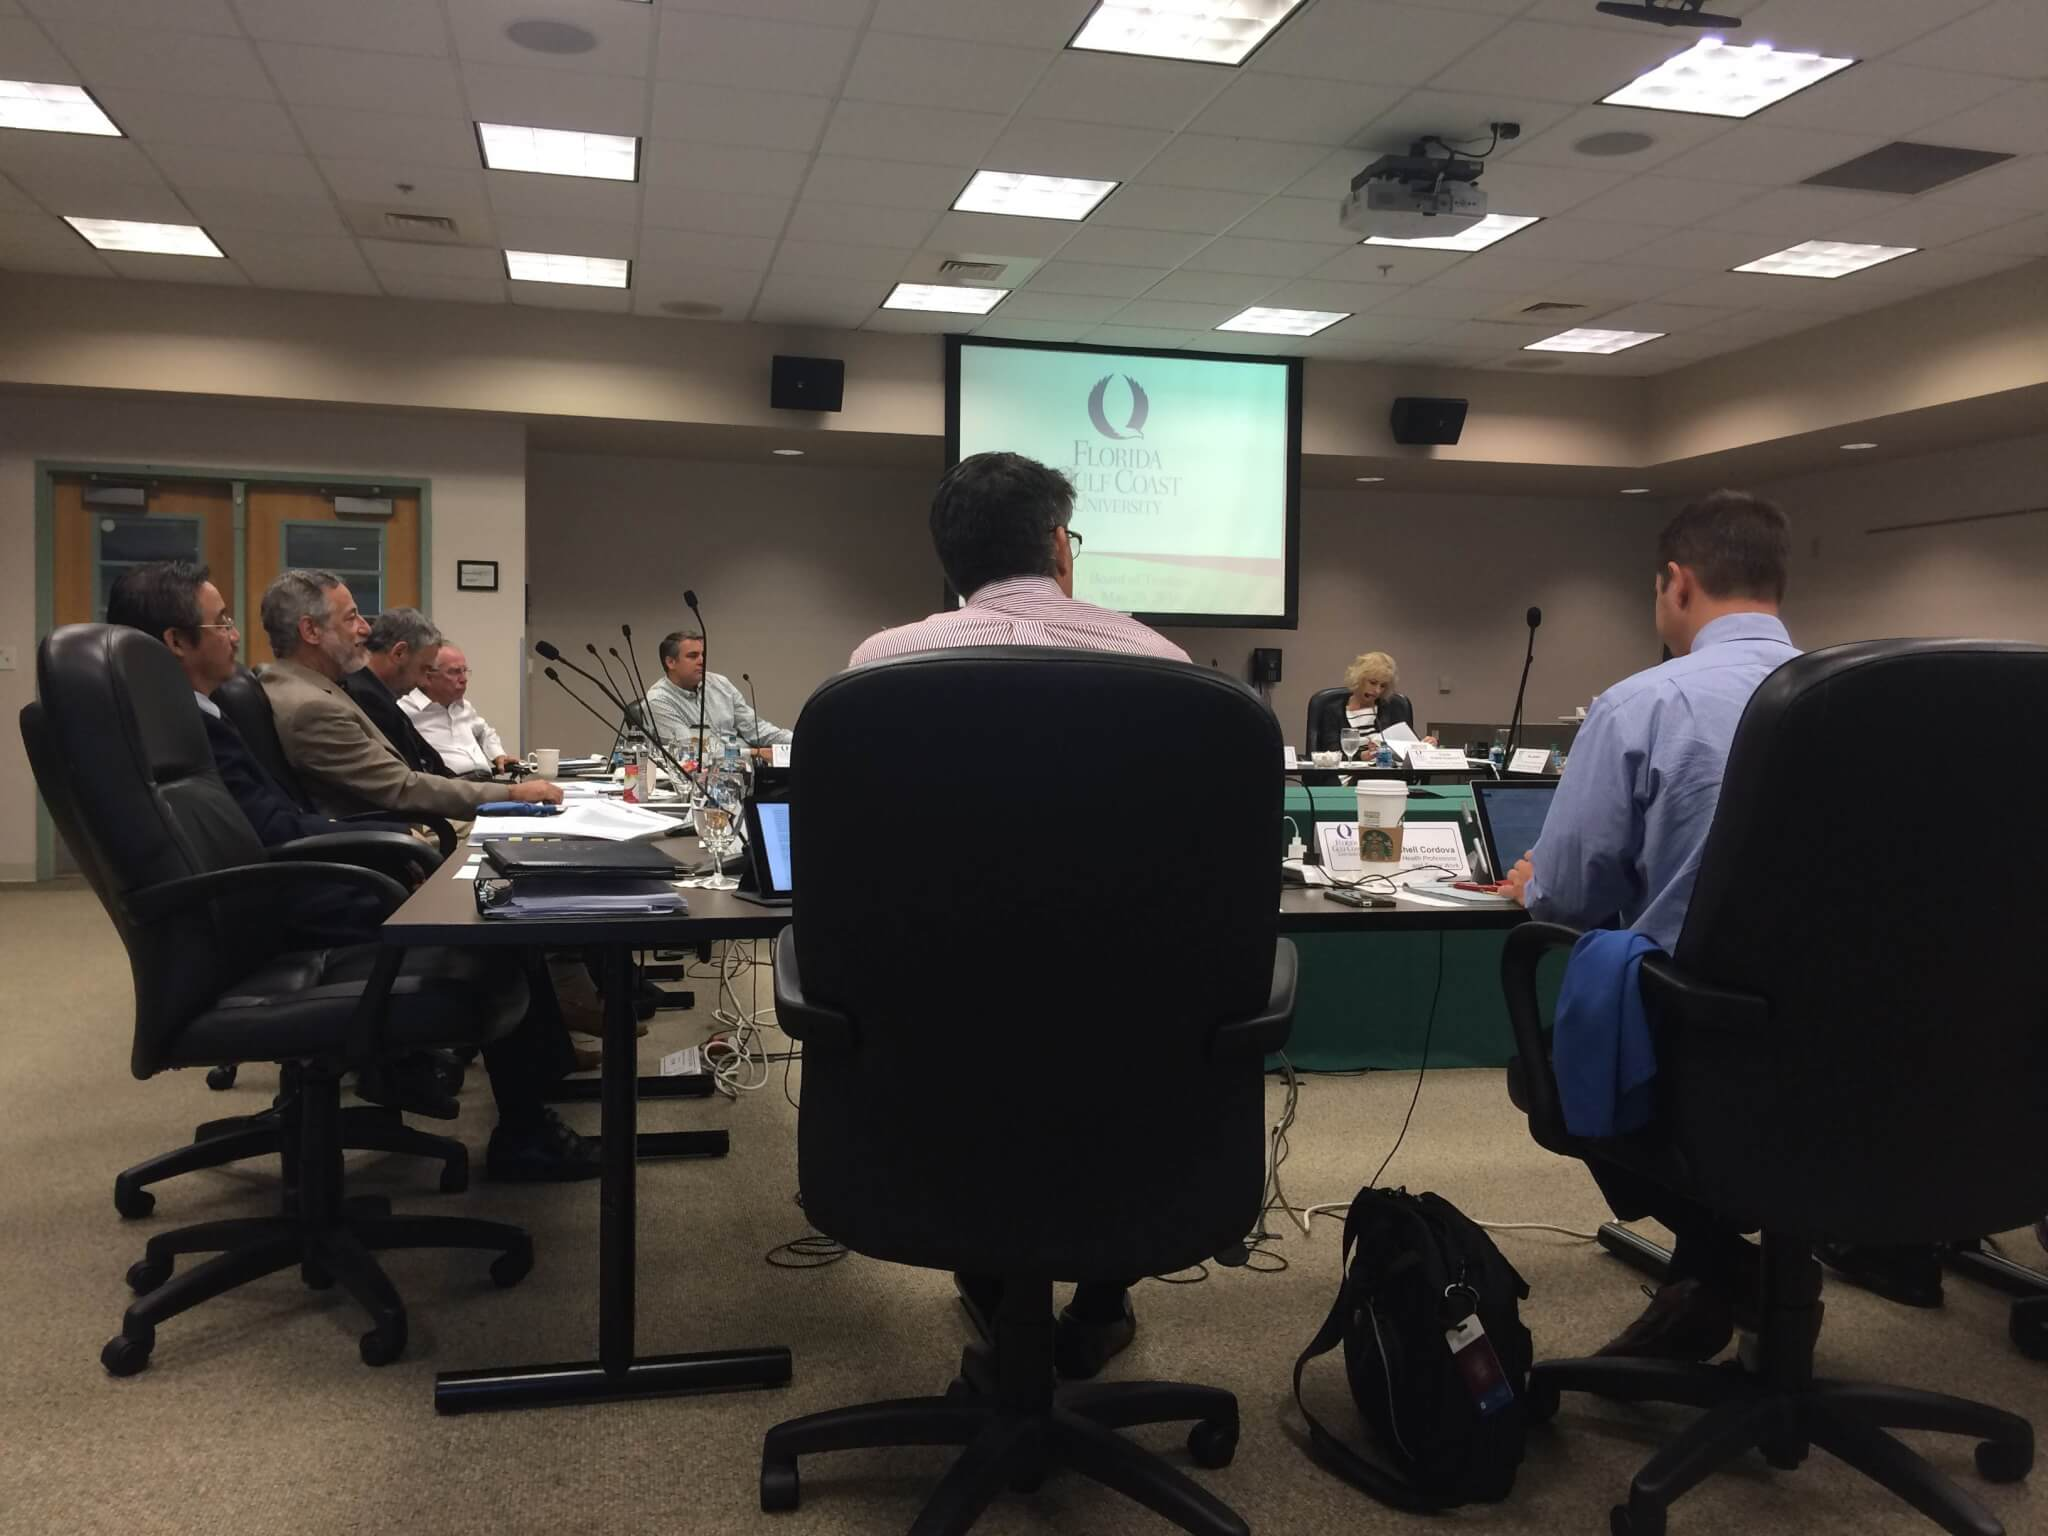 Board of Trustees members disagree on new strategic plan